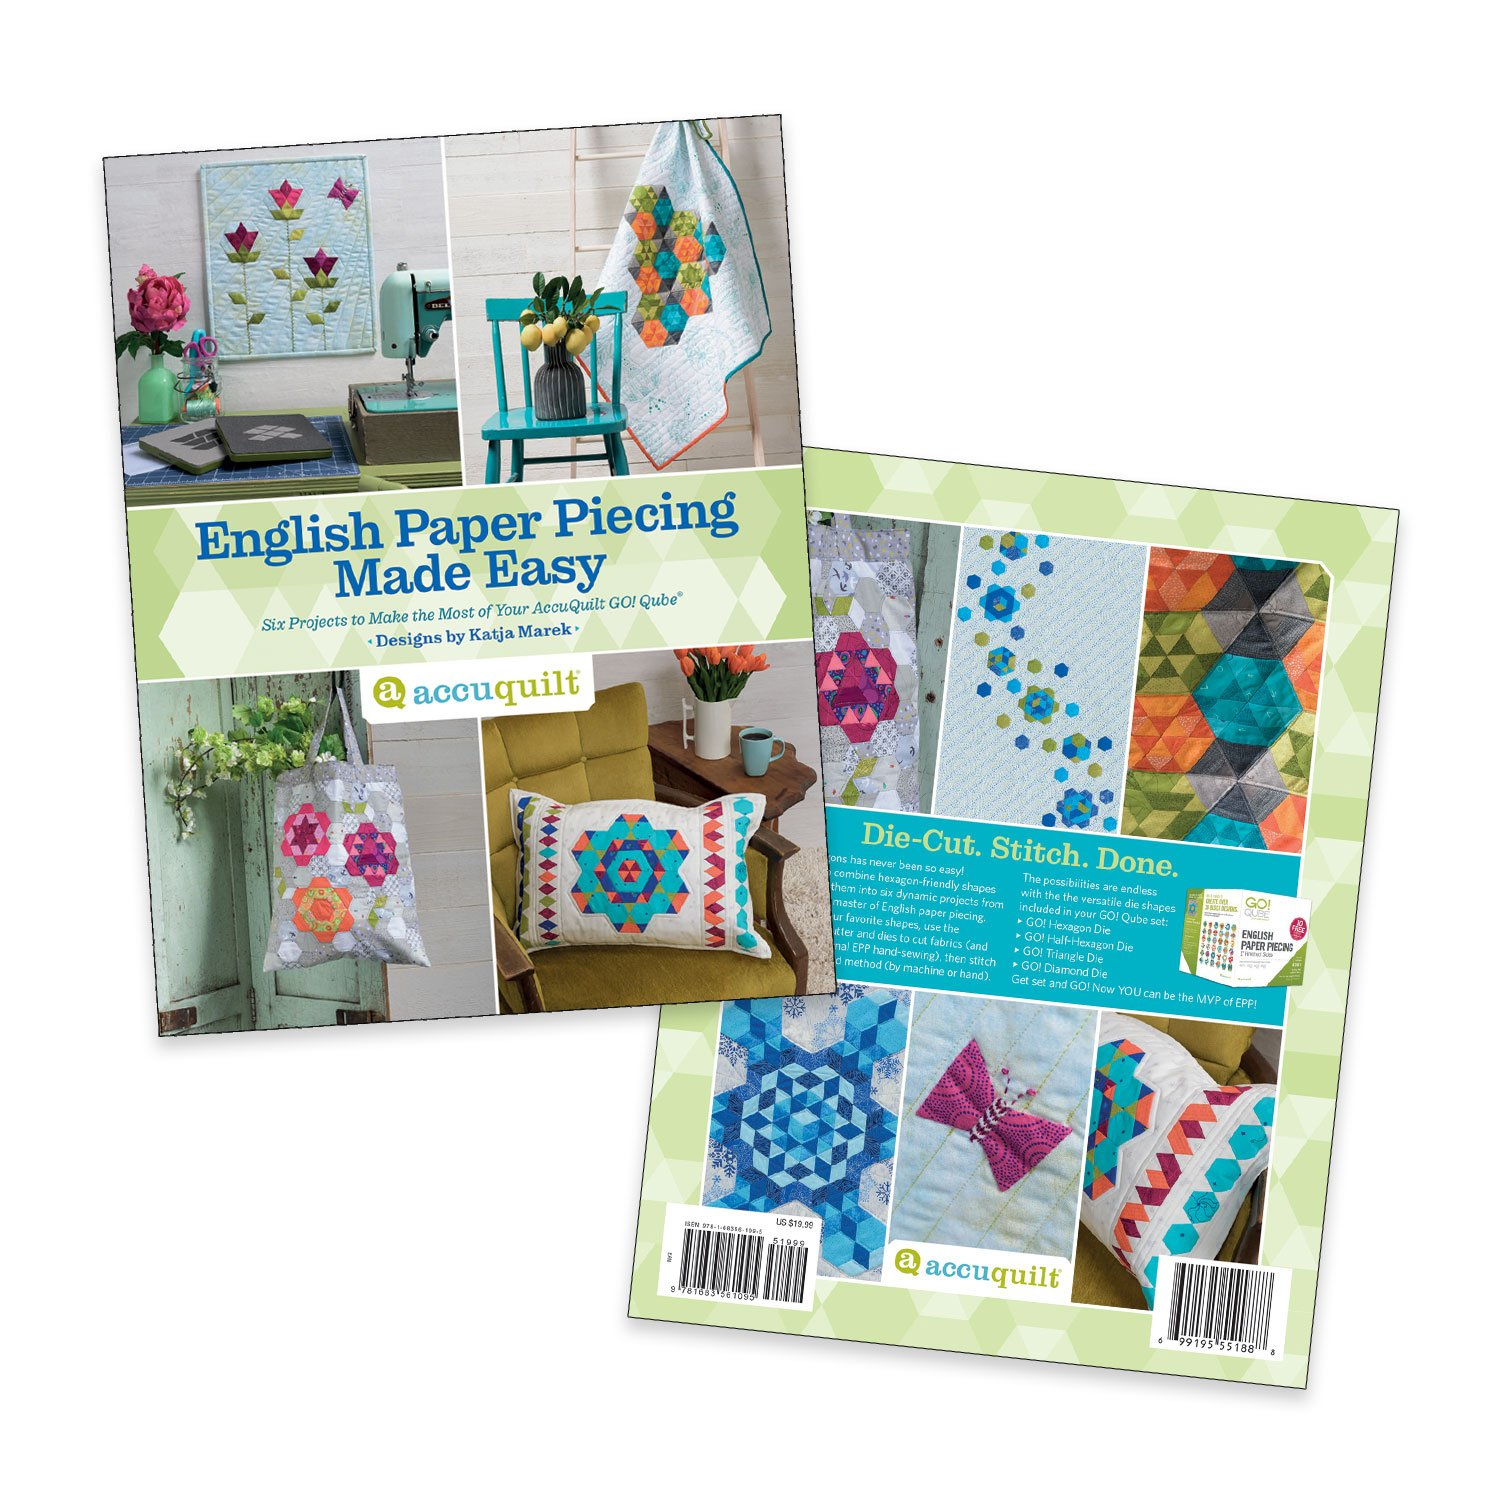 English Paper Piecing Made Easy Pattern Book by Katja Marek - 55188